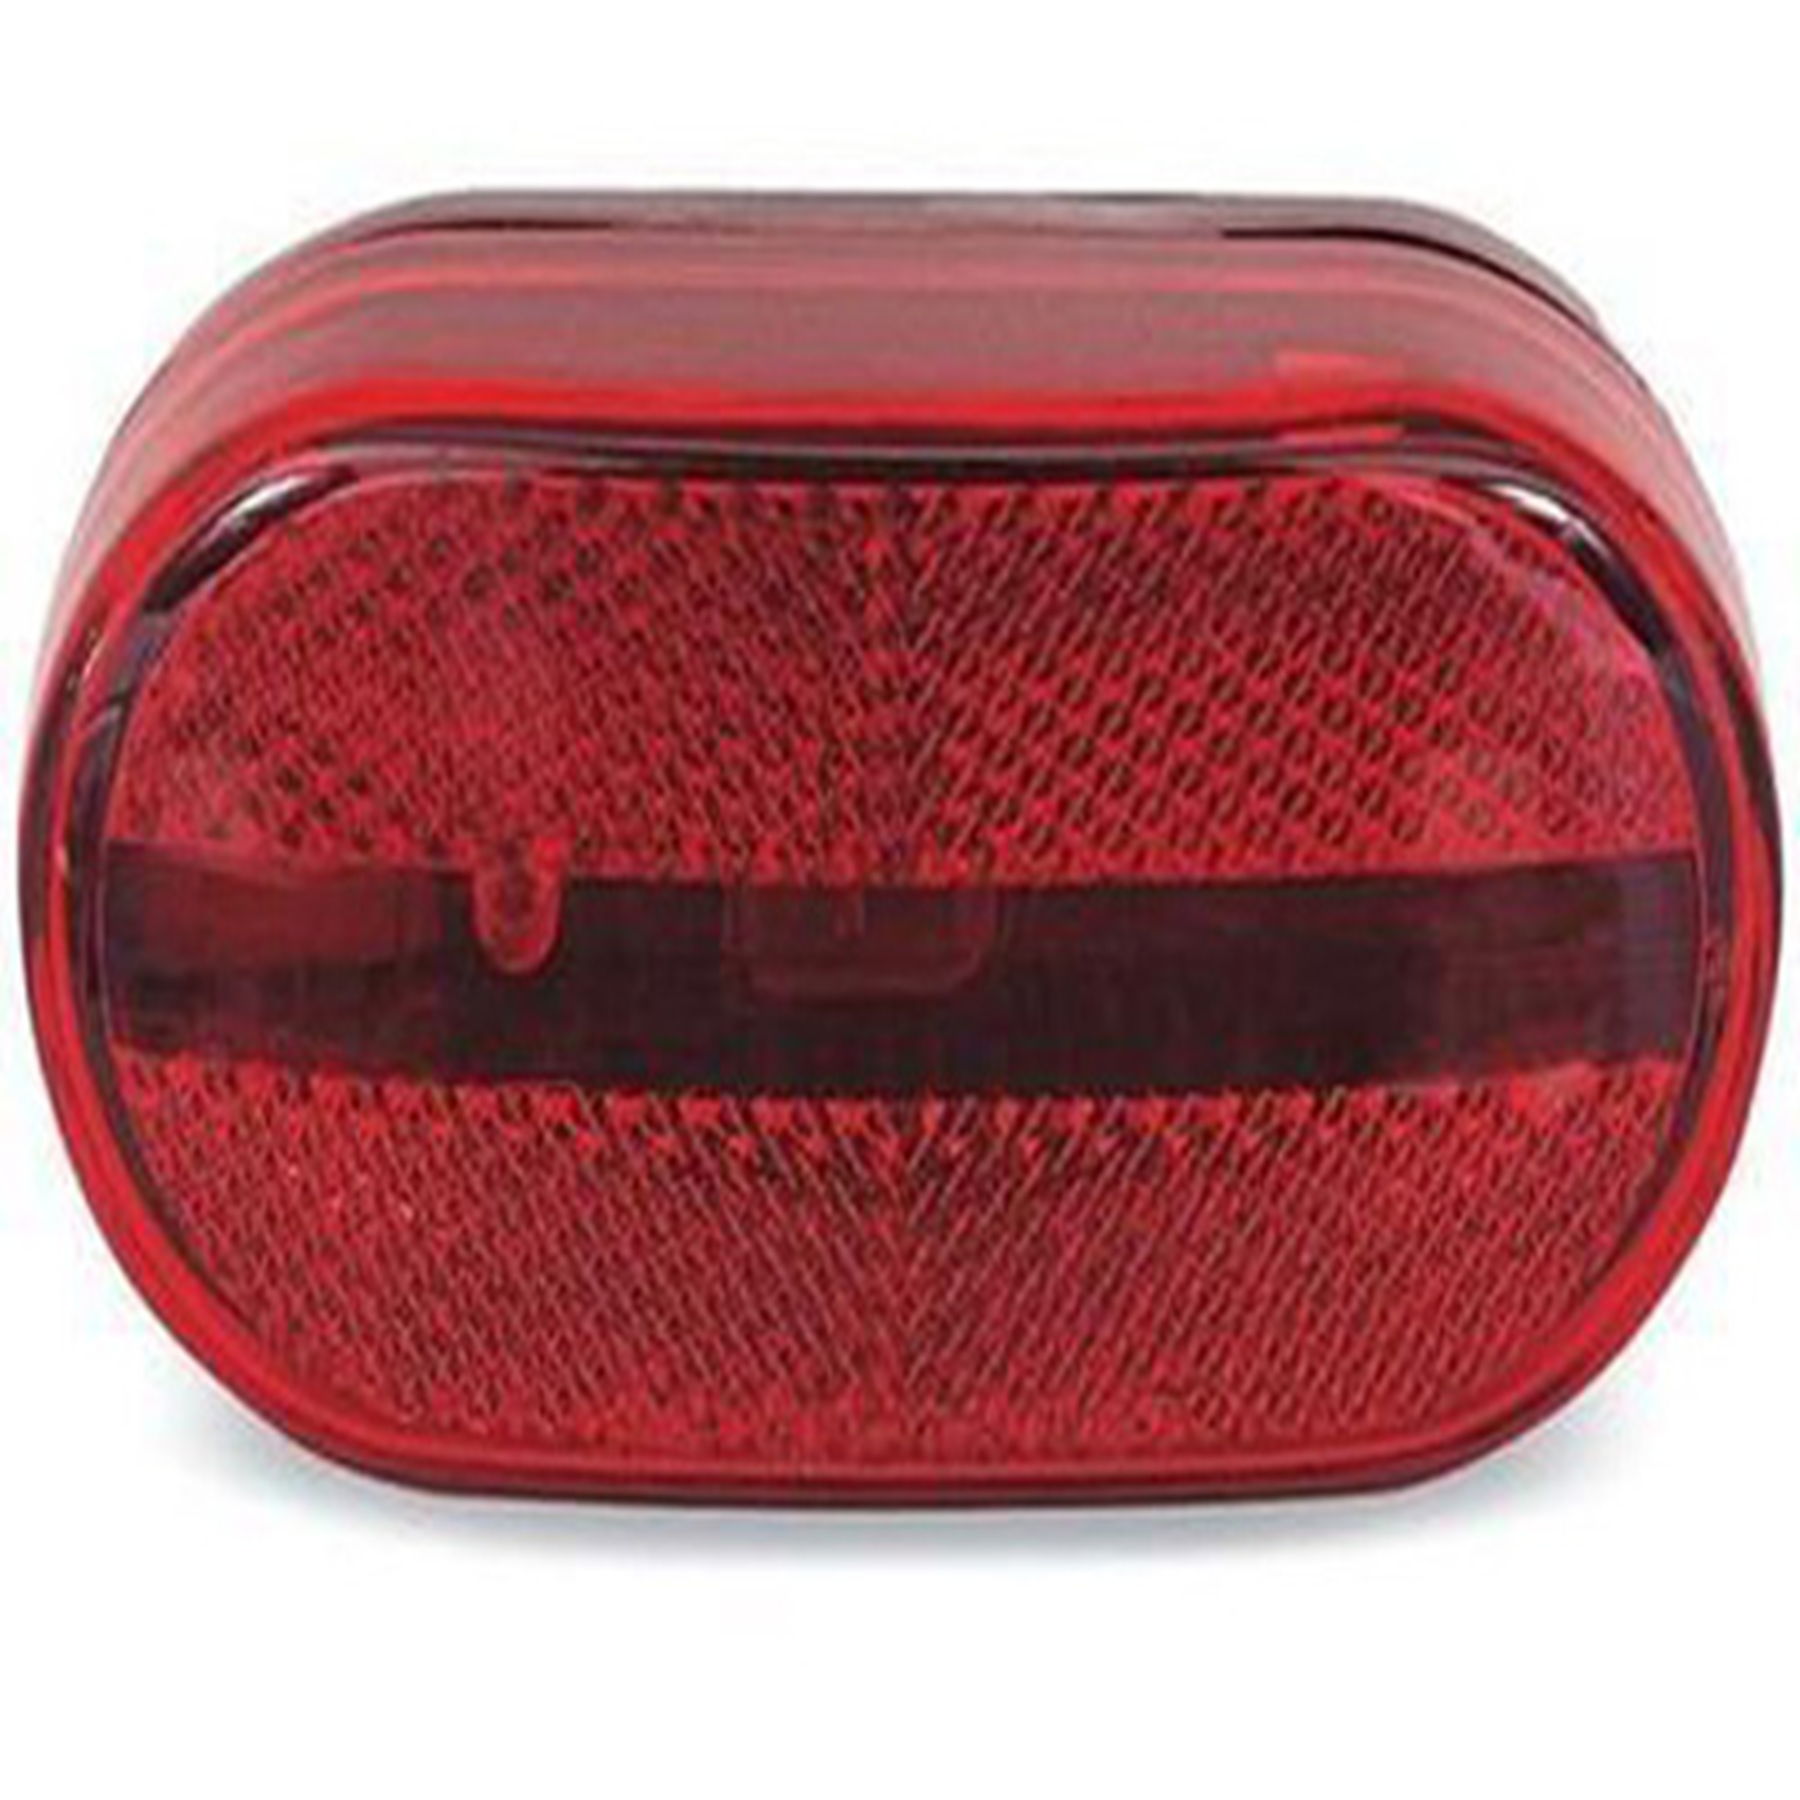 OBLONG CLEARANCE LIGHT RED